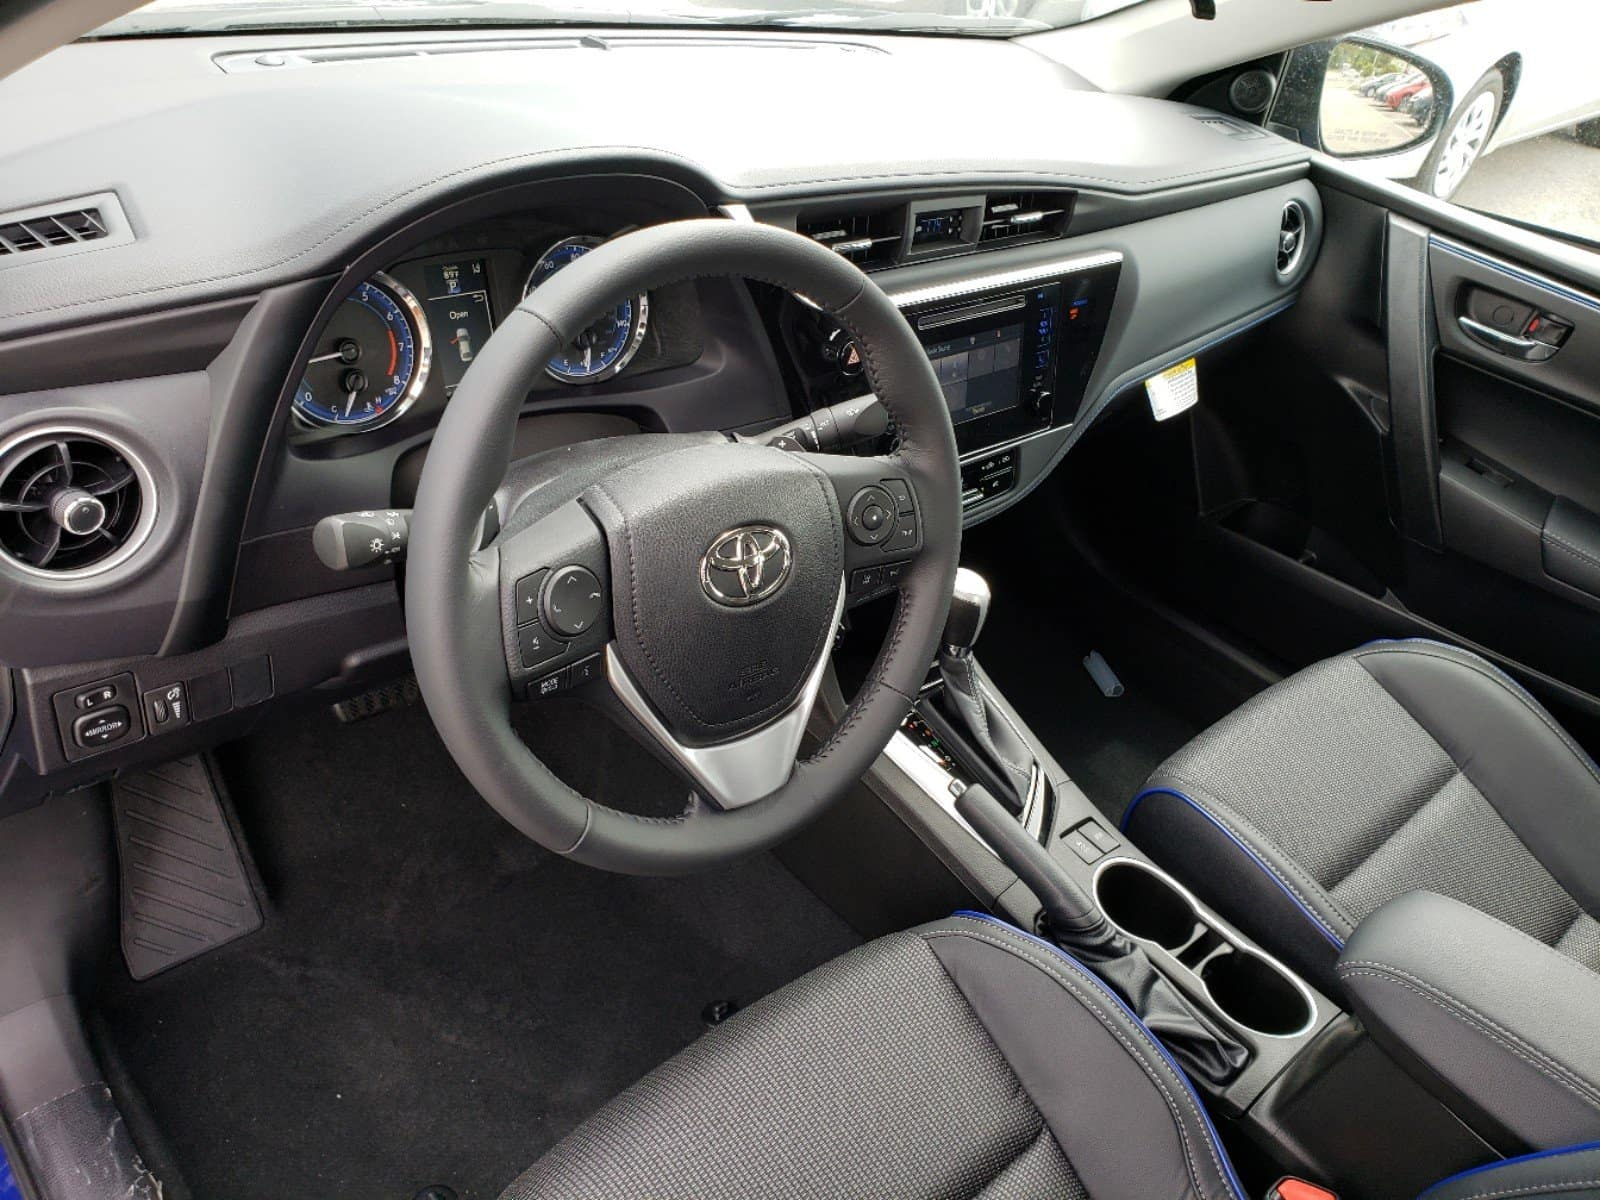 Test drive the new 2019 Toyota Corolla at Toyota of Orlando.